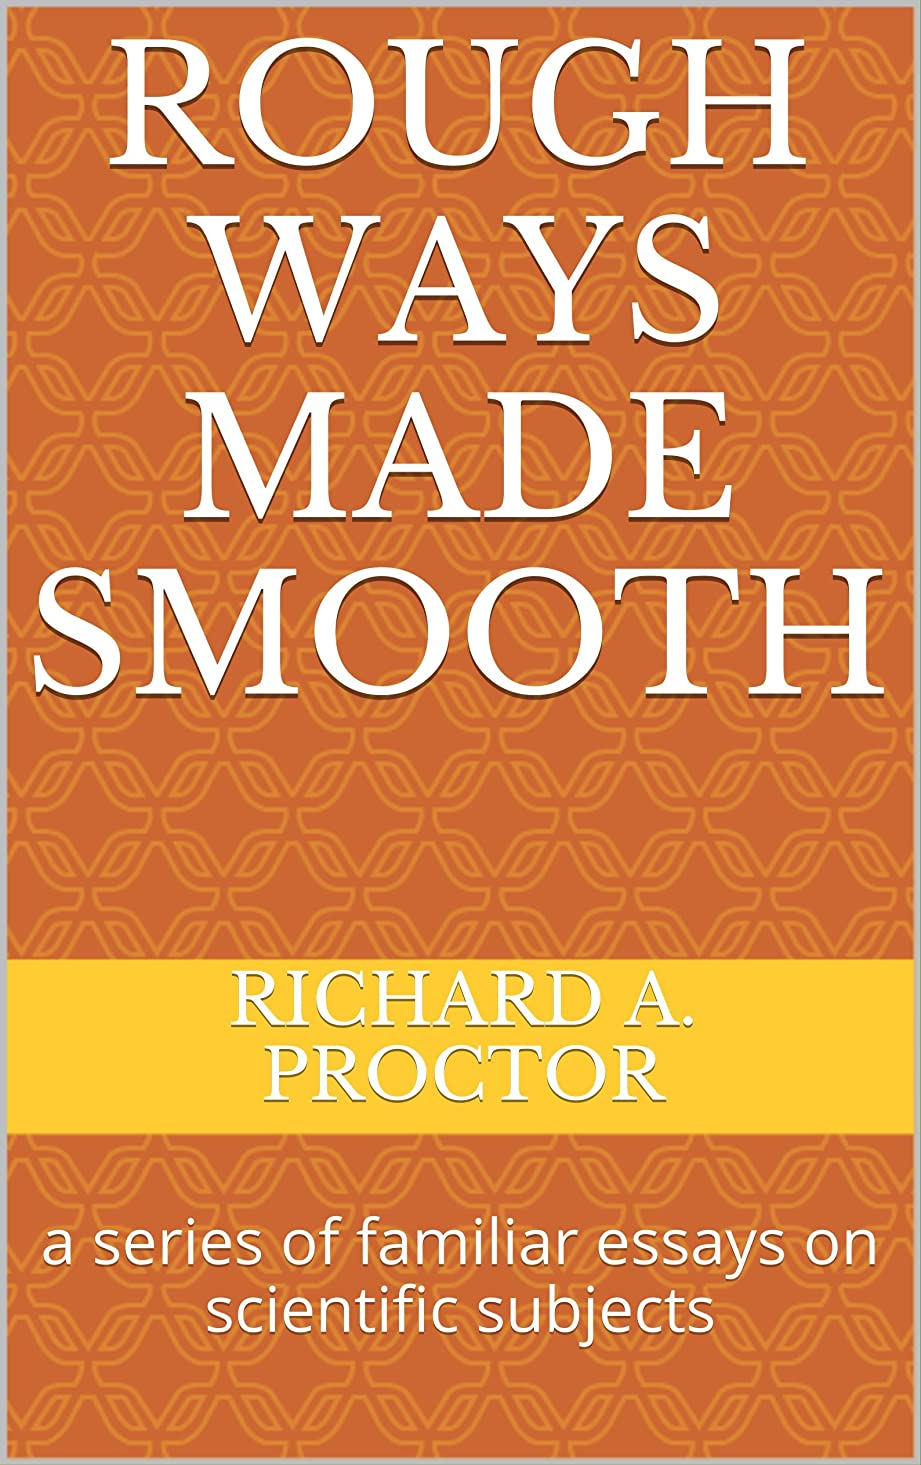 チャップ受取人素朴なRough Ways Made Smooth: a series of familiar essays on scientific subjects (English Edition)